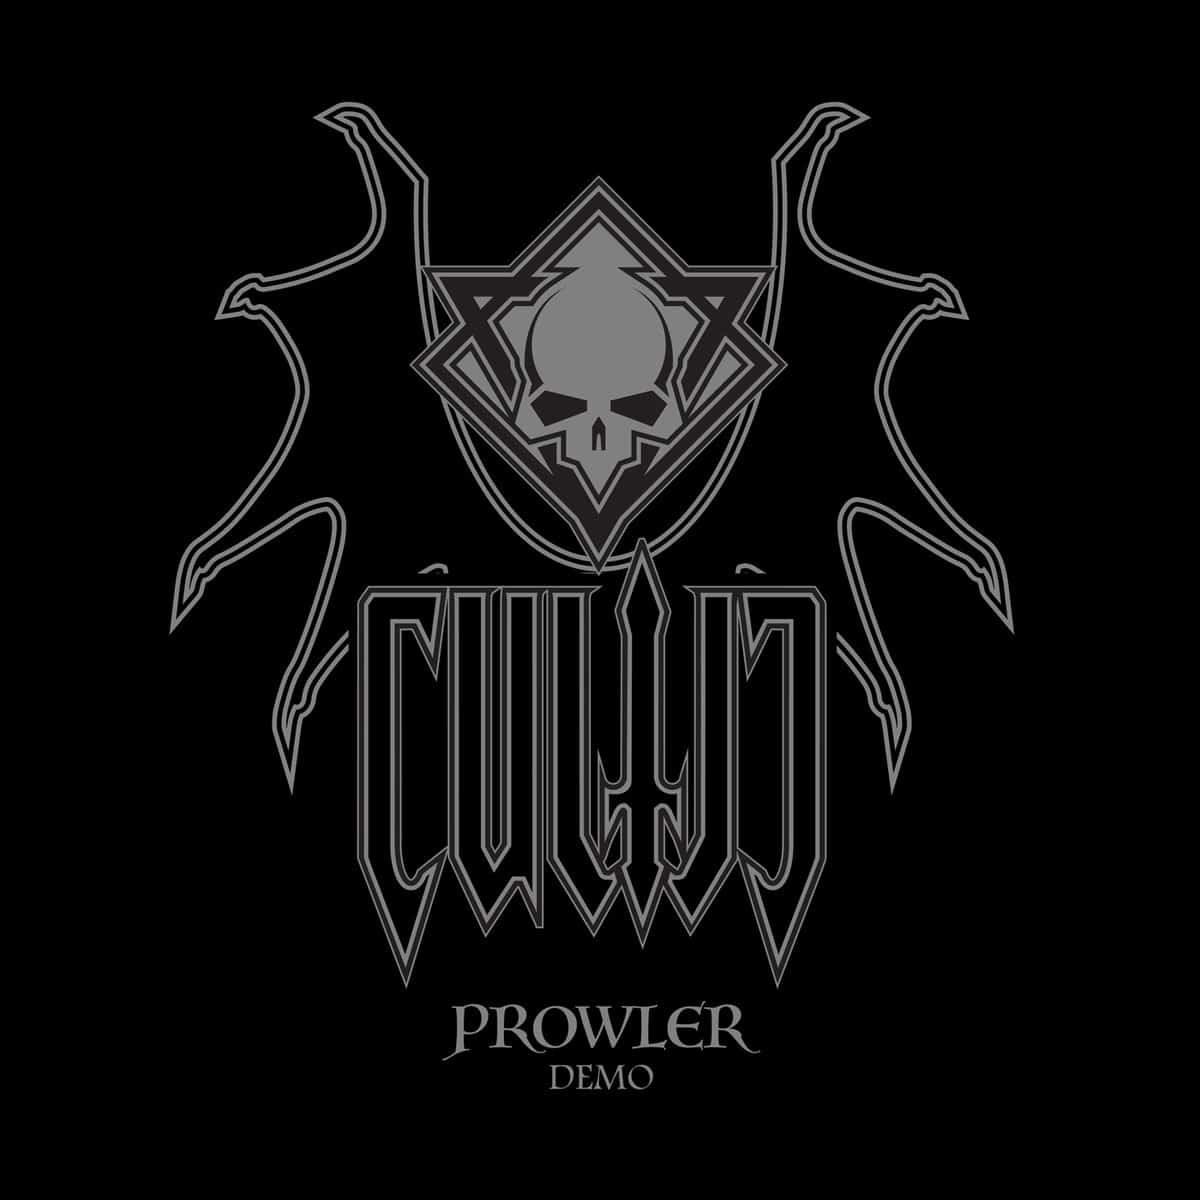 PROWLER Demo Cover Art